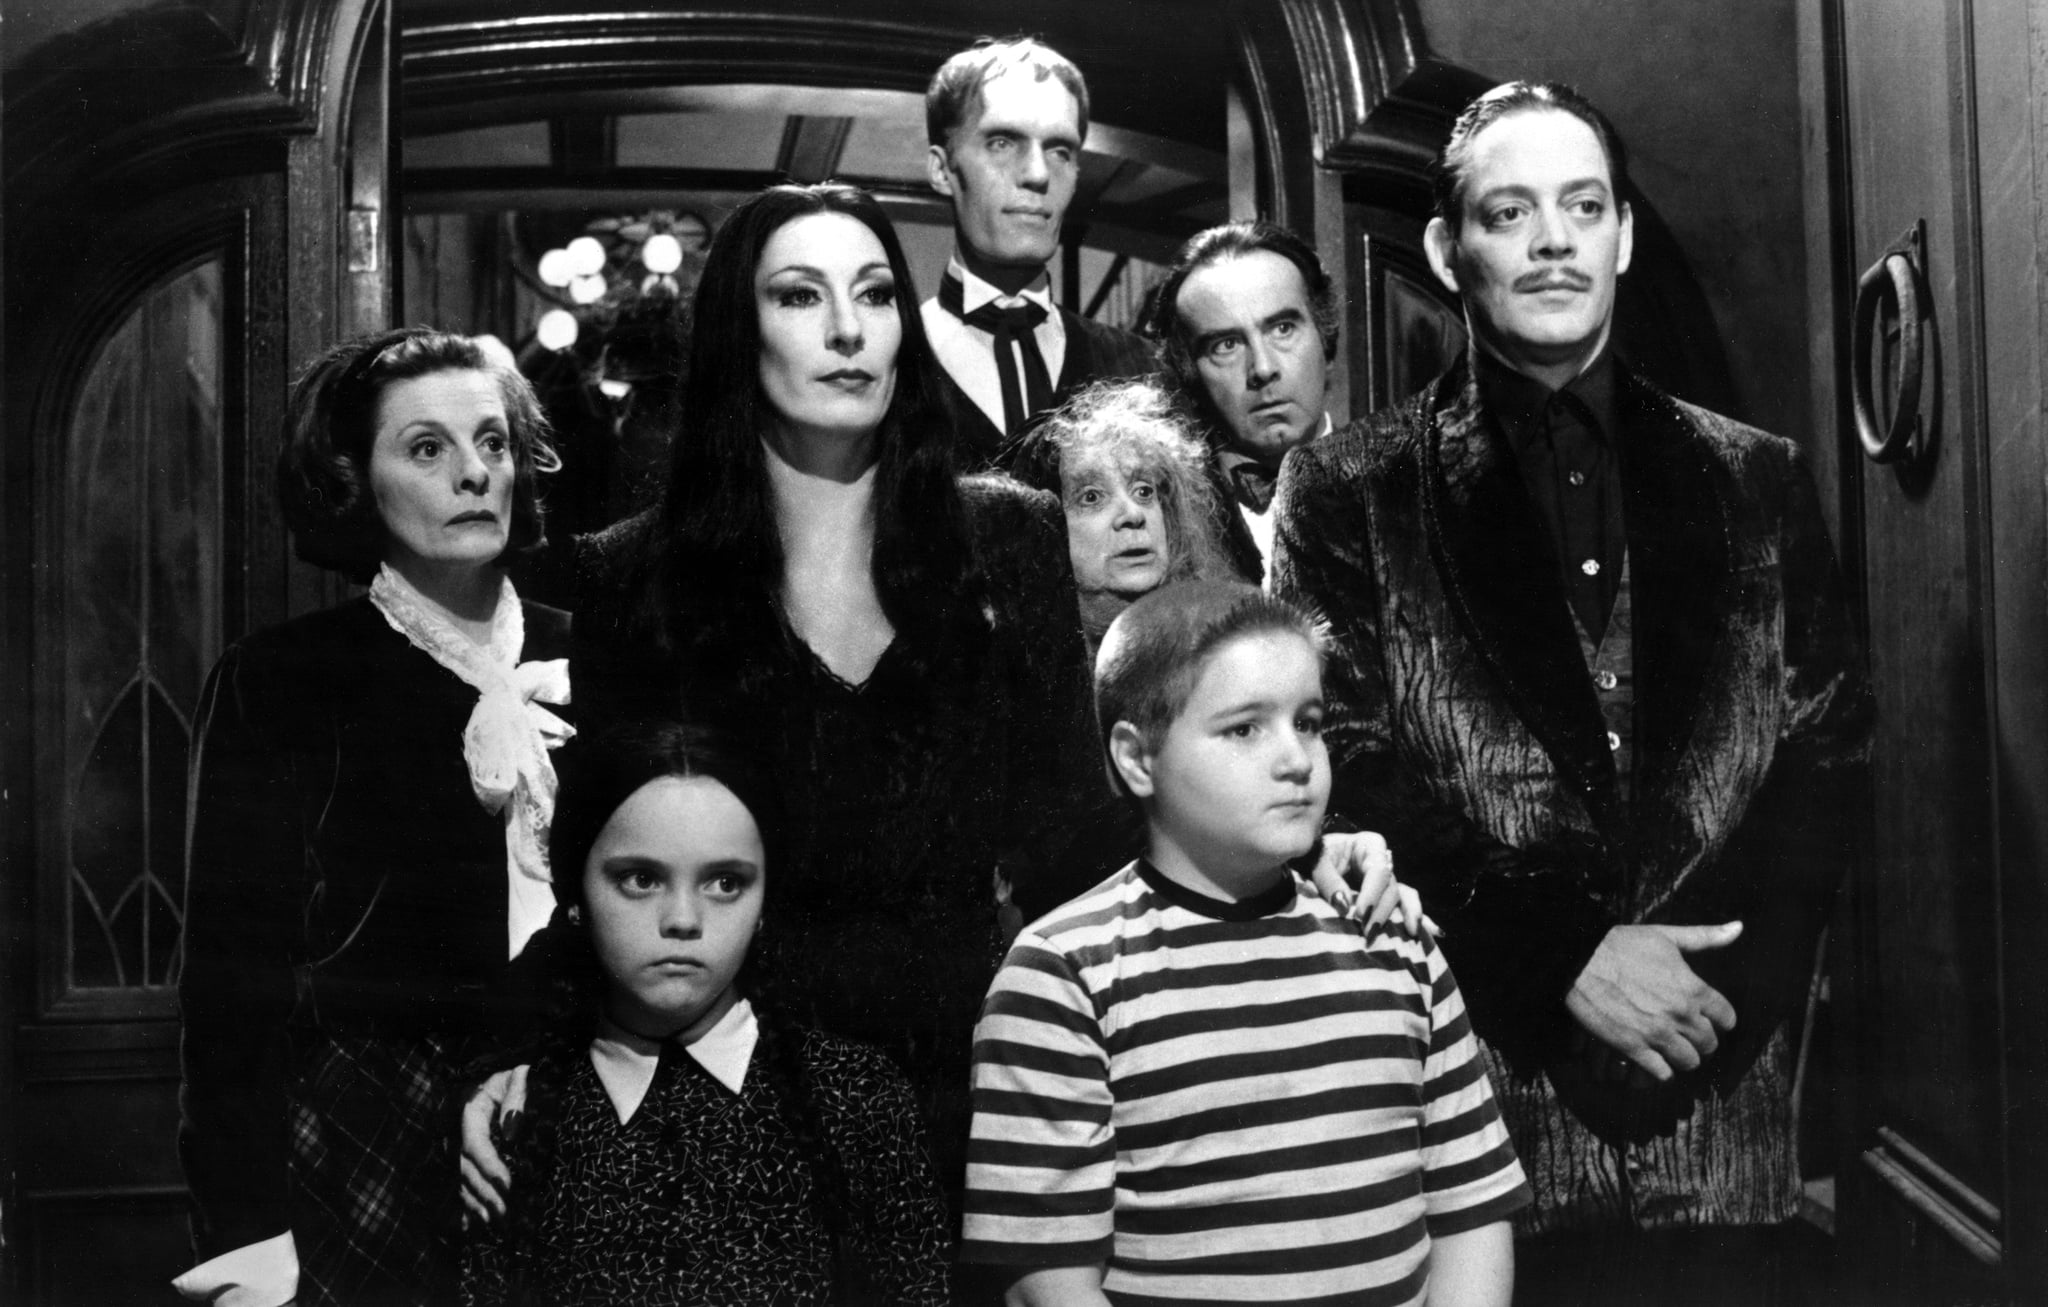 THE ADDAMS FAMILY, Dana Ivey, Christina Ricci, Anjelica Huston, Carel Struycken, Judith Malina, Jimmy Workman, Dan Hedaya, Raul Julia, 1991